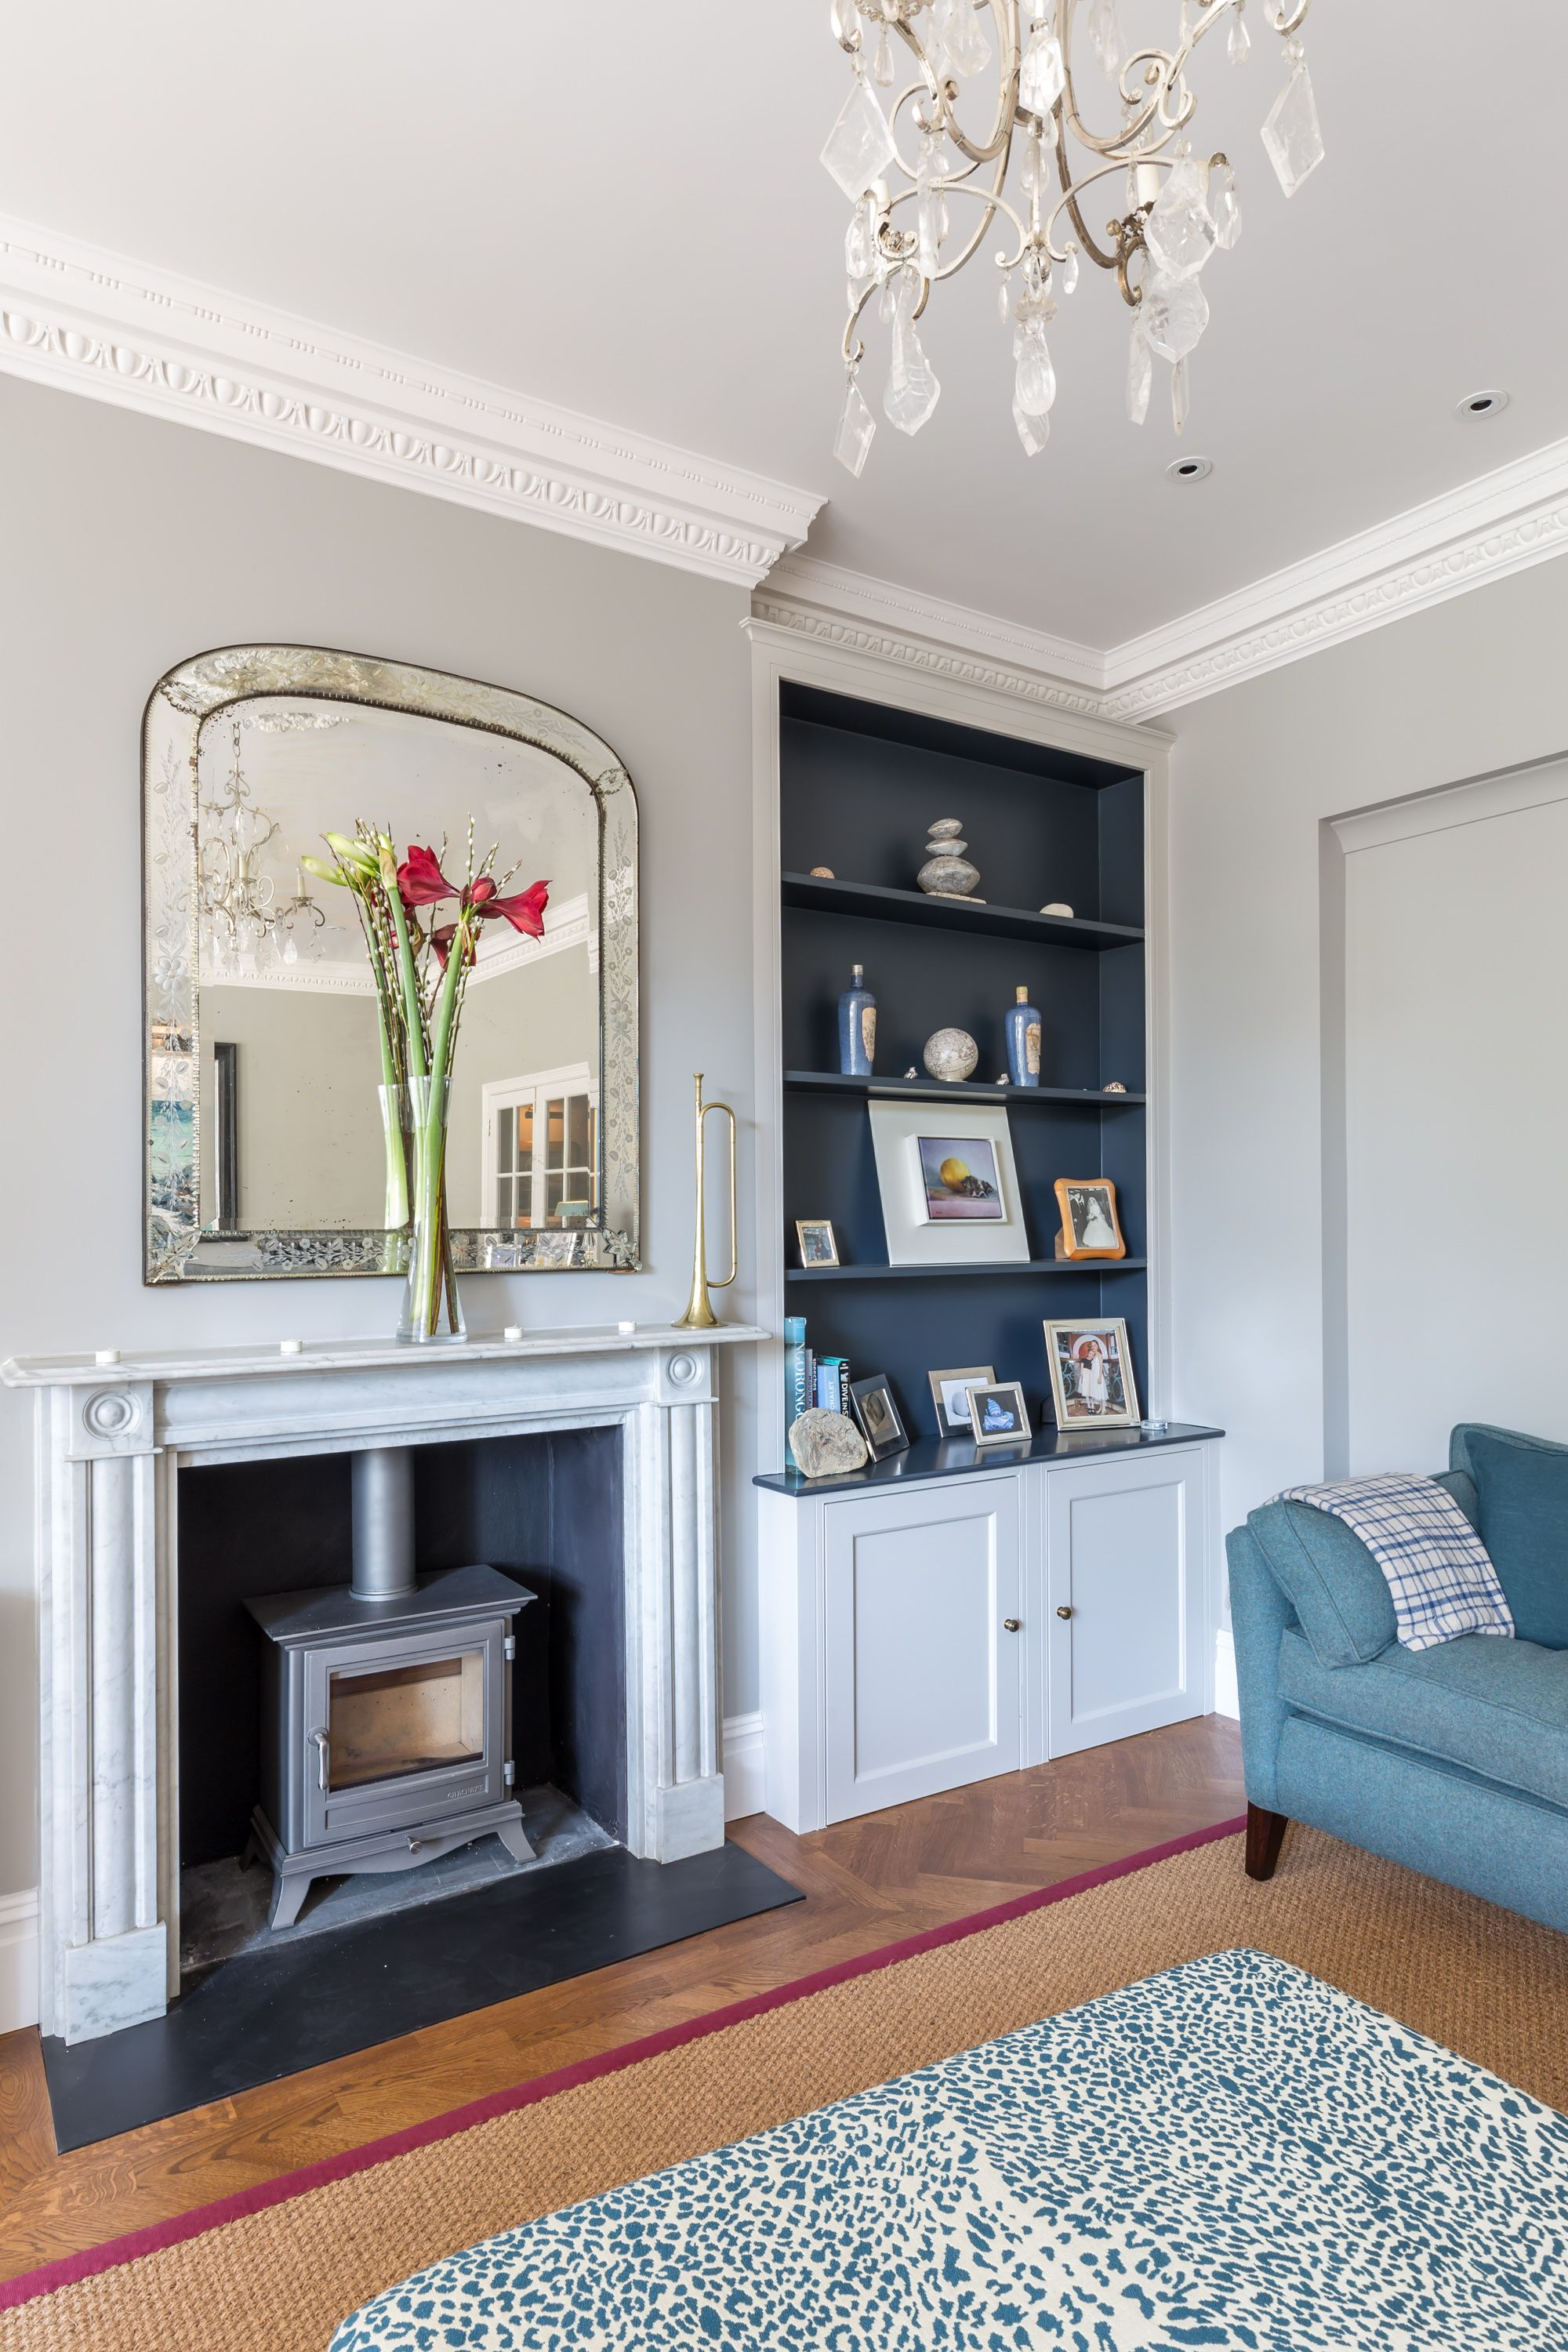 Living Room Renovation To A Stylish Victorian Property In Lo